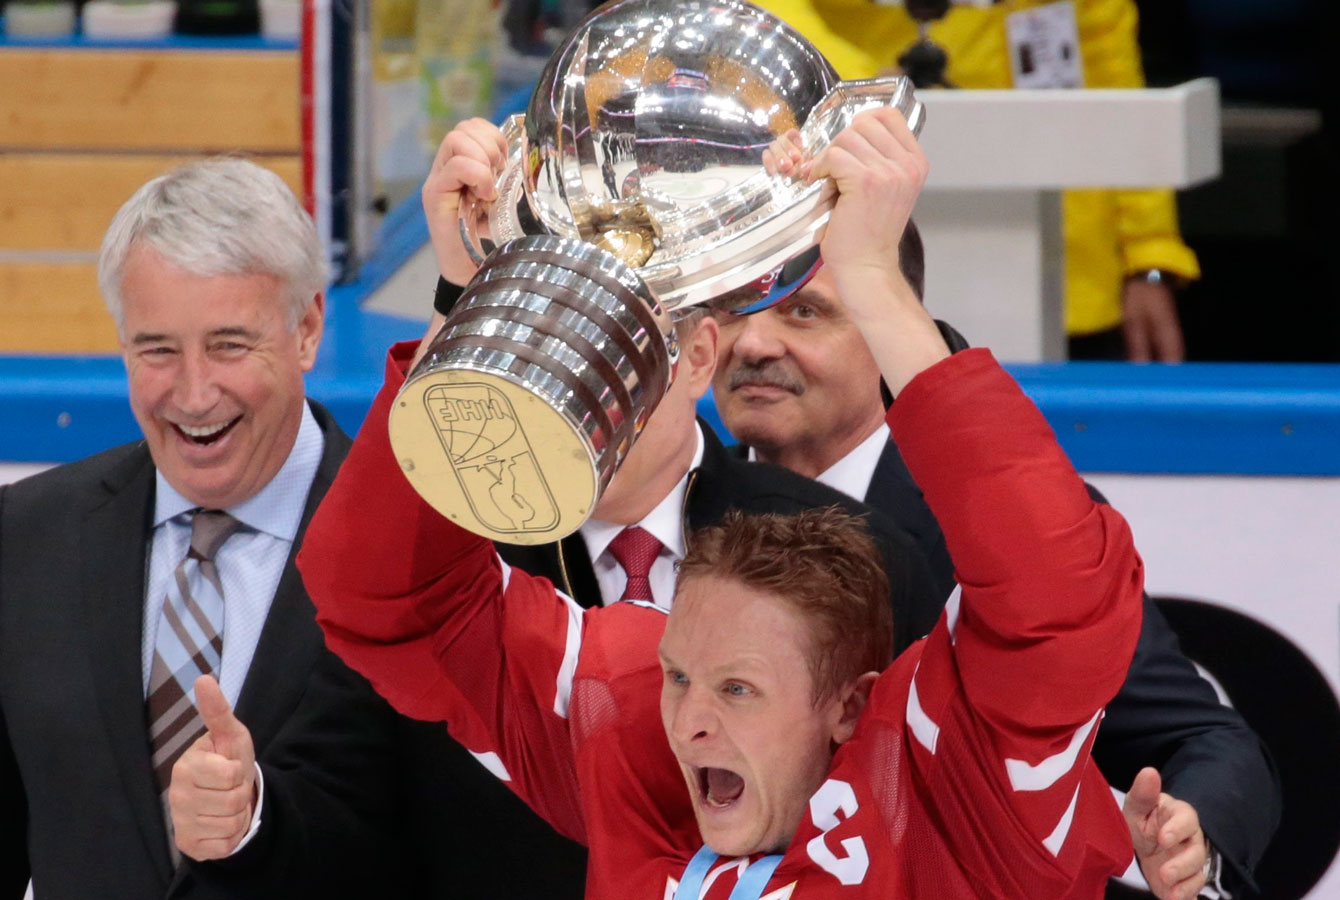 Corey Perry holds up the IIHF World Championship trophy after Canada beat Finland 2-0 on May 22, 2016.